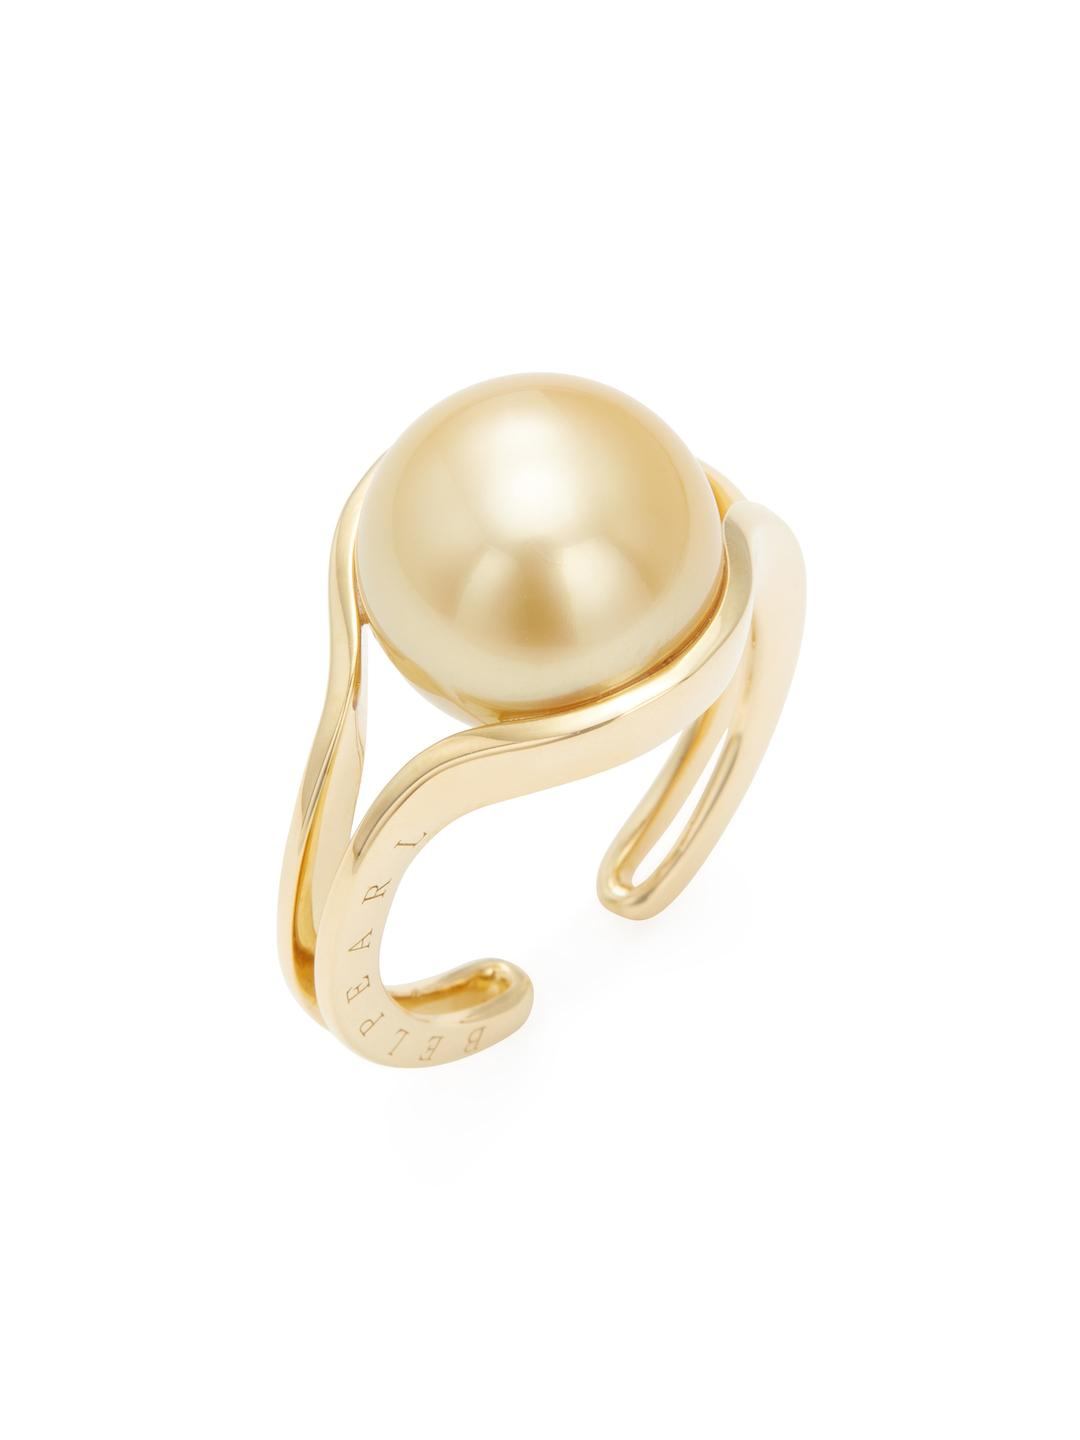 Belpearl 18k Double South Sea Pearl Ring, Size 6